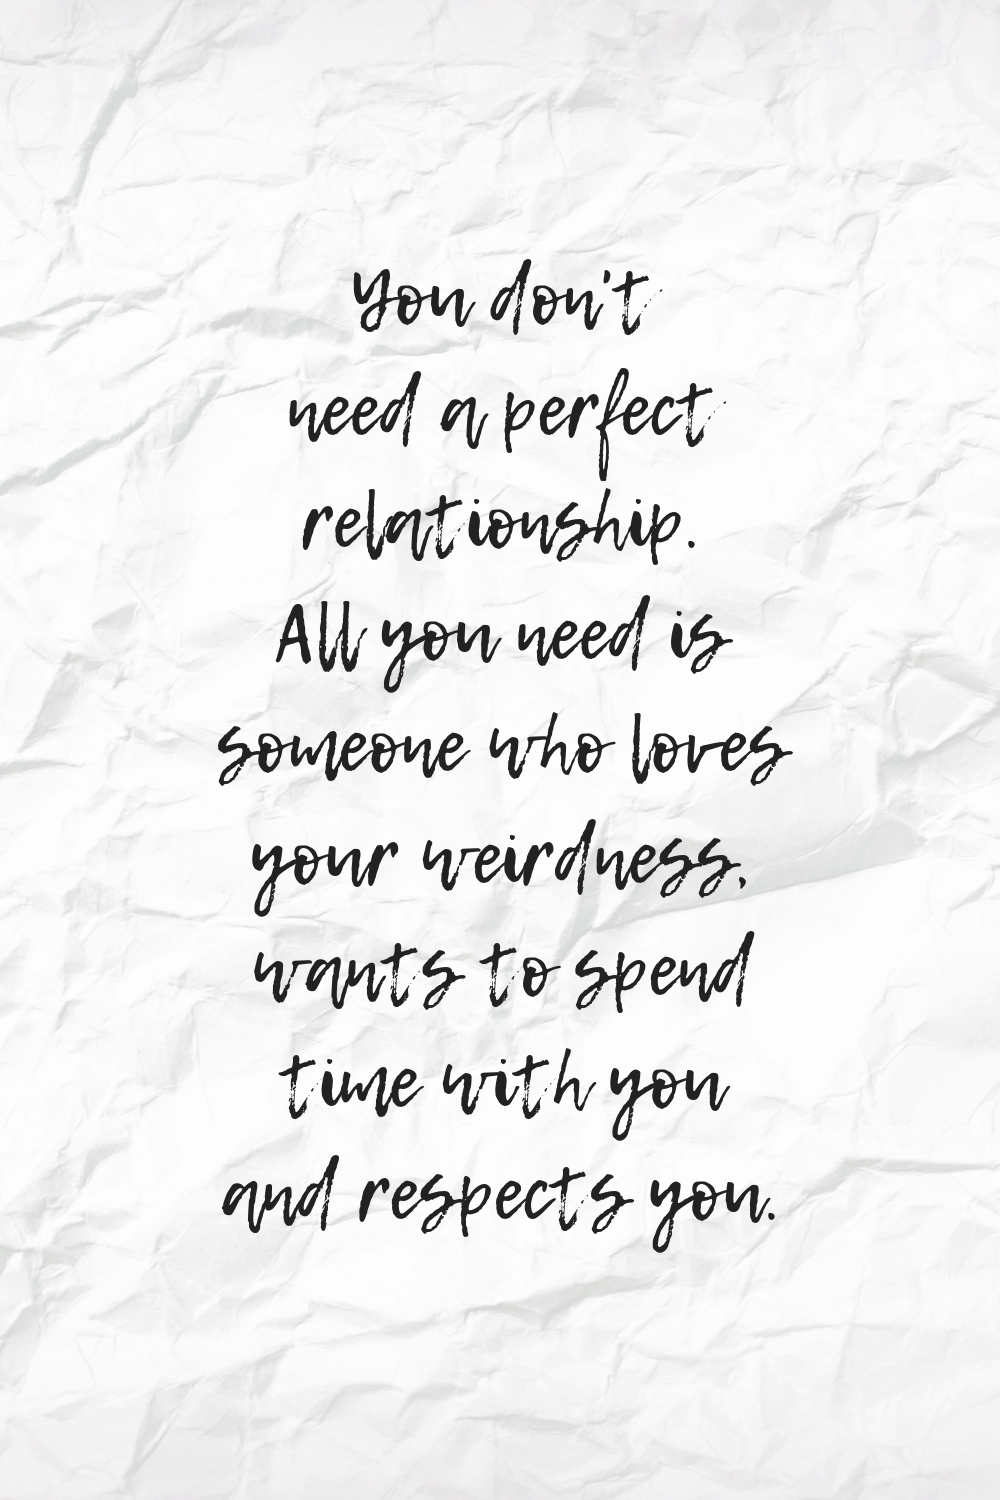 22 Super Cute Love Quotes and Sayings FREE Digital Download